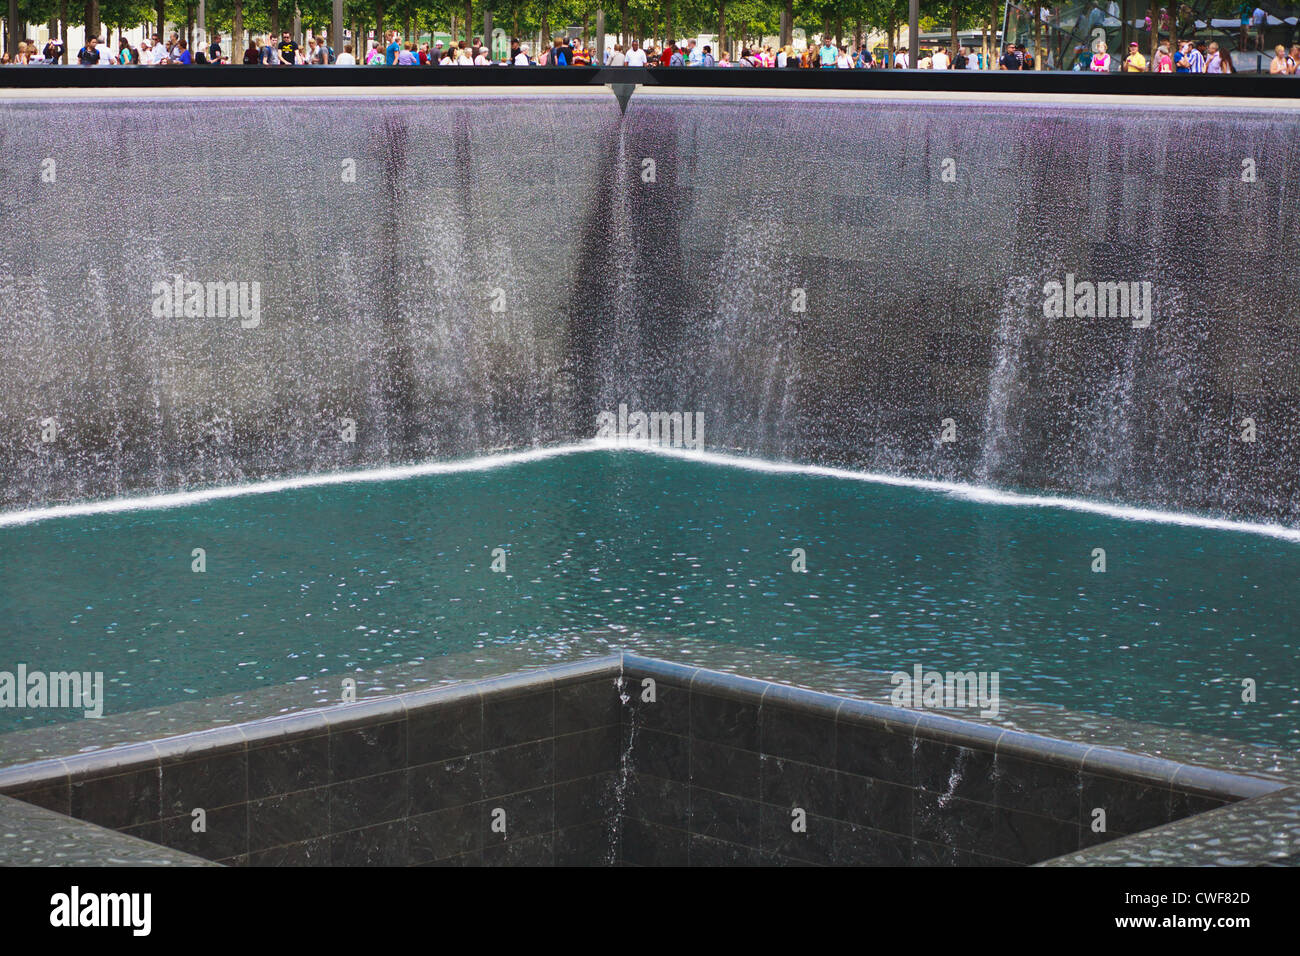 The National September 11 Memorial, New York City, designed by Arad and Walker, opened on 10th anniversary of attacks - Stock Image